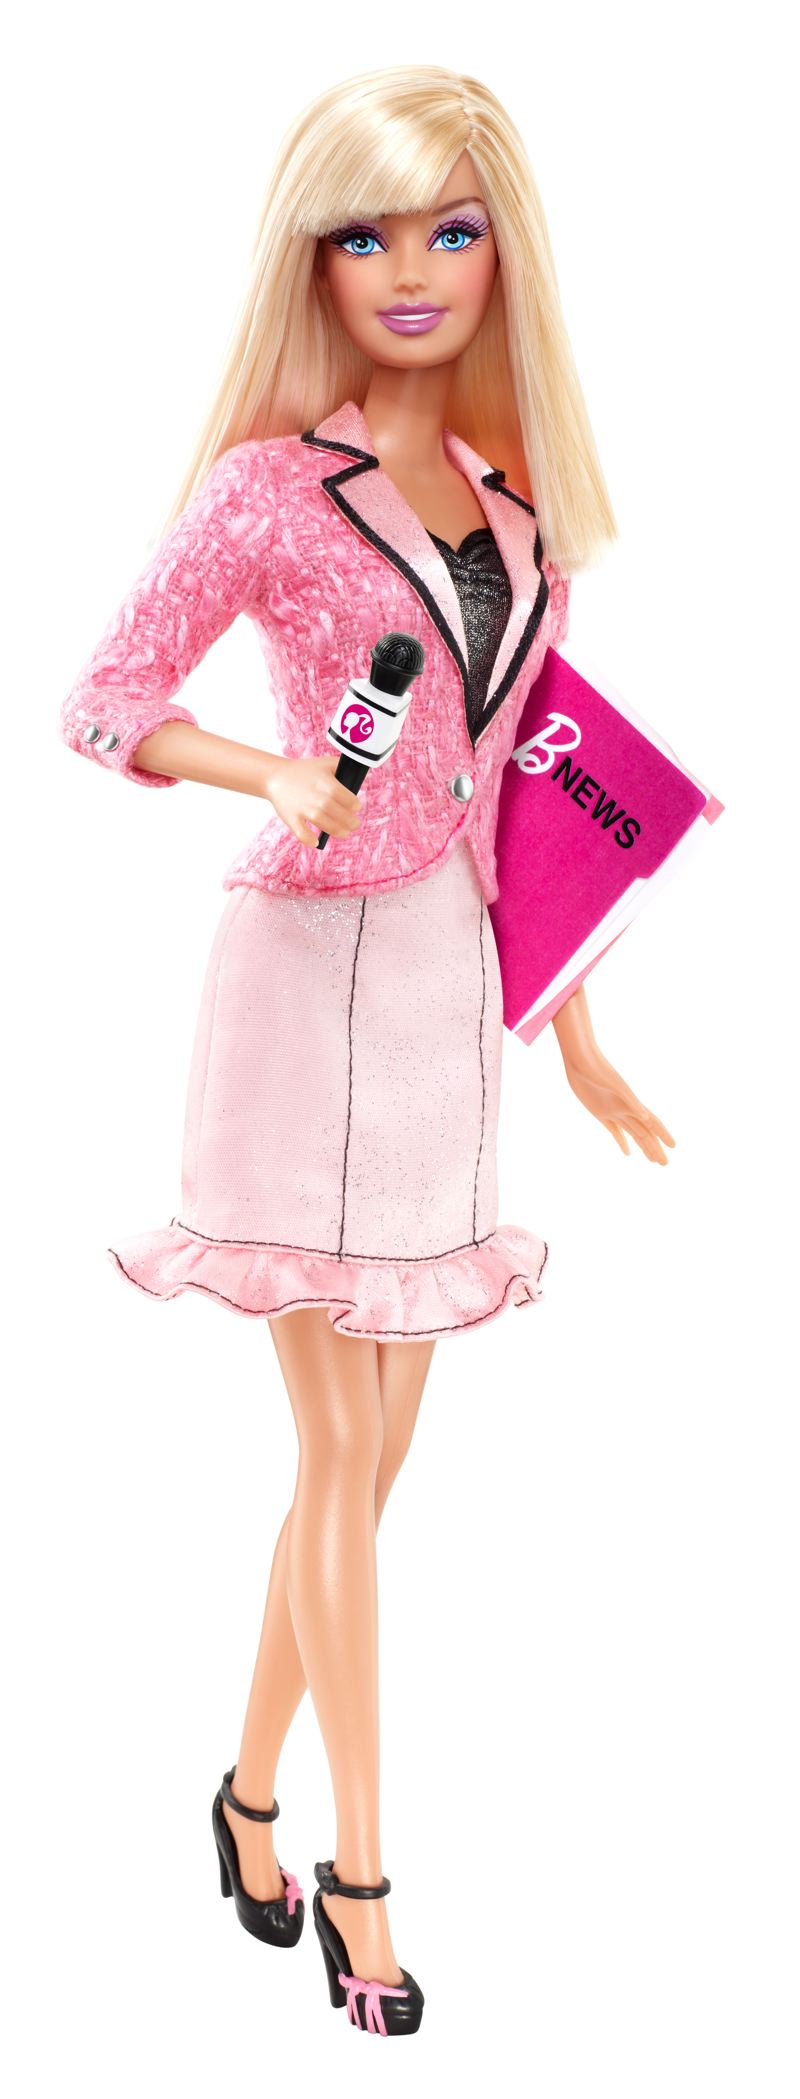 Things barbie taught me about style